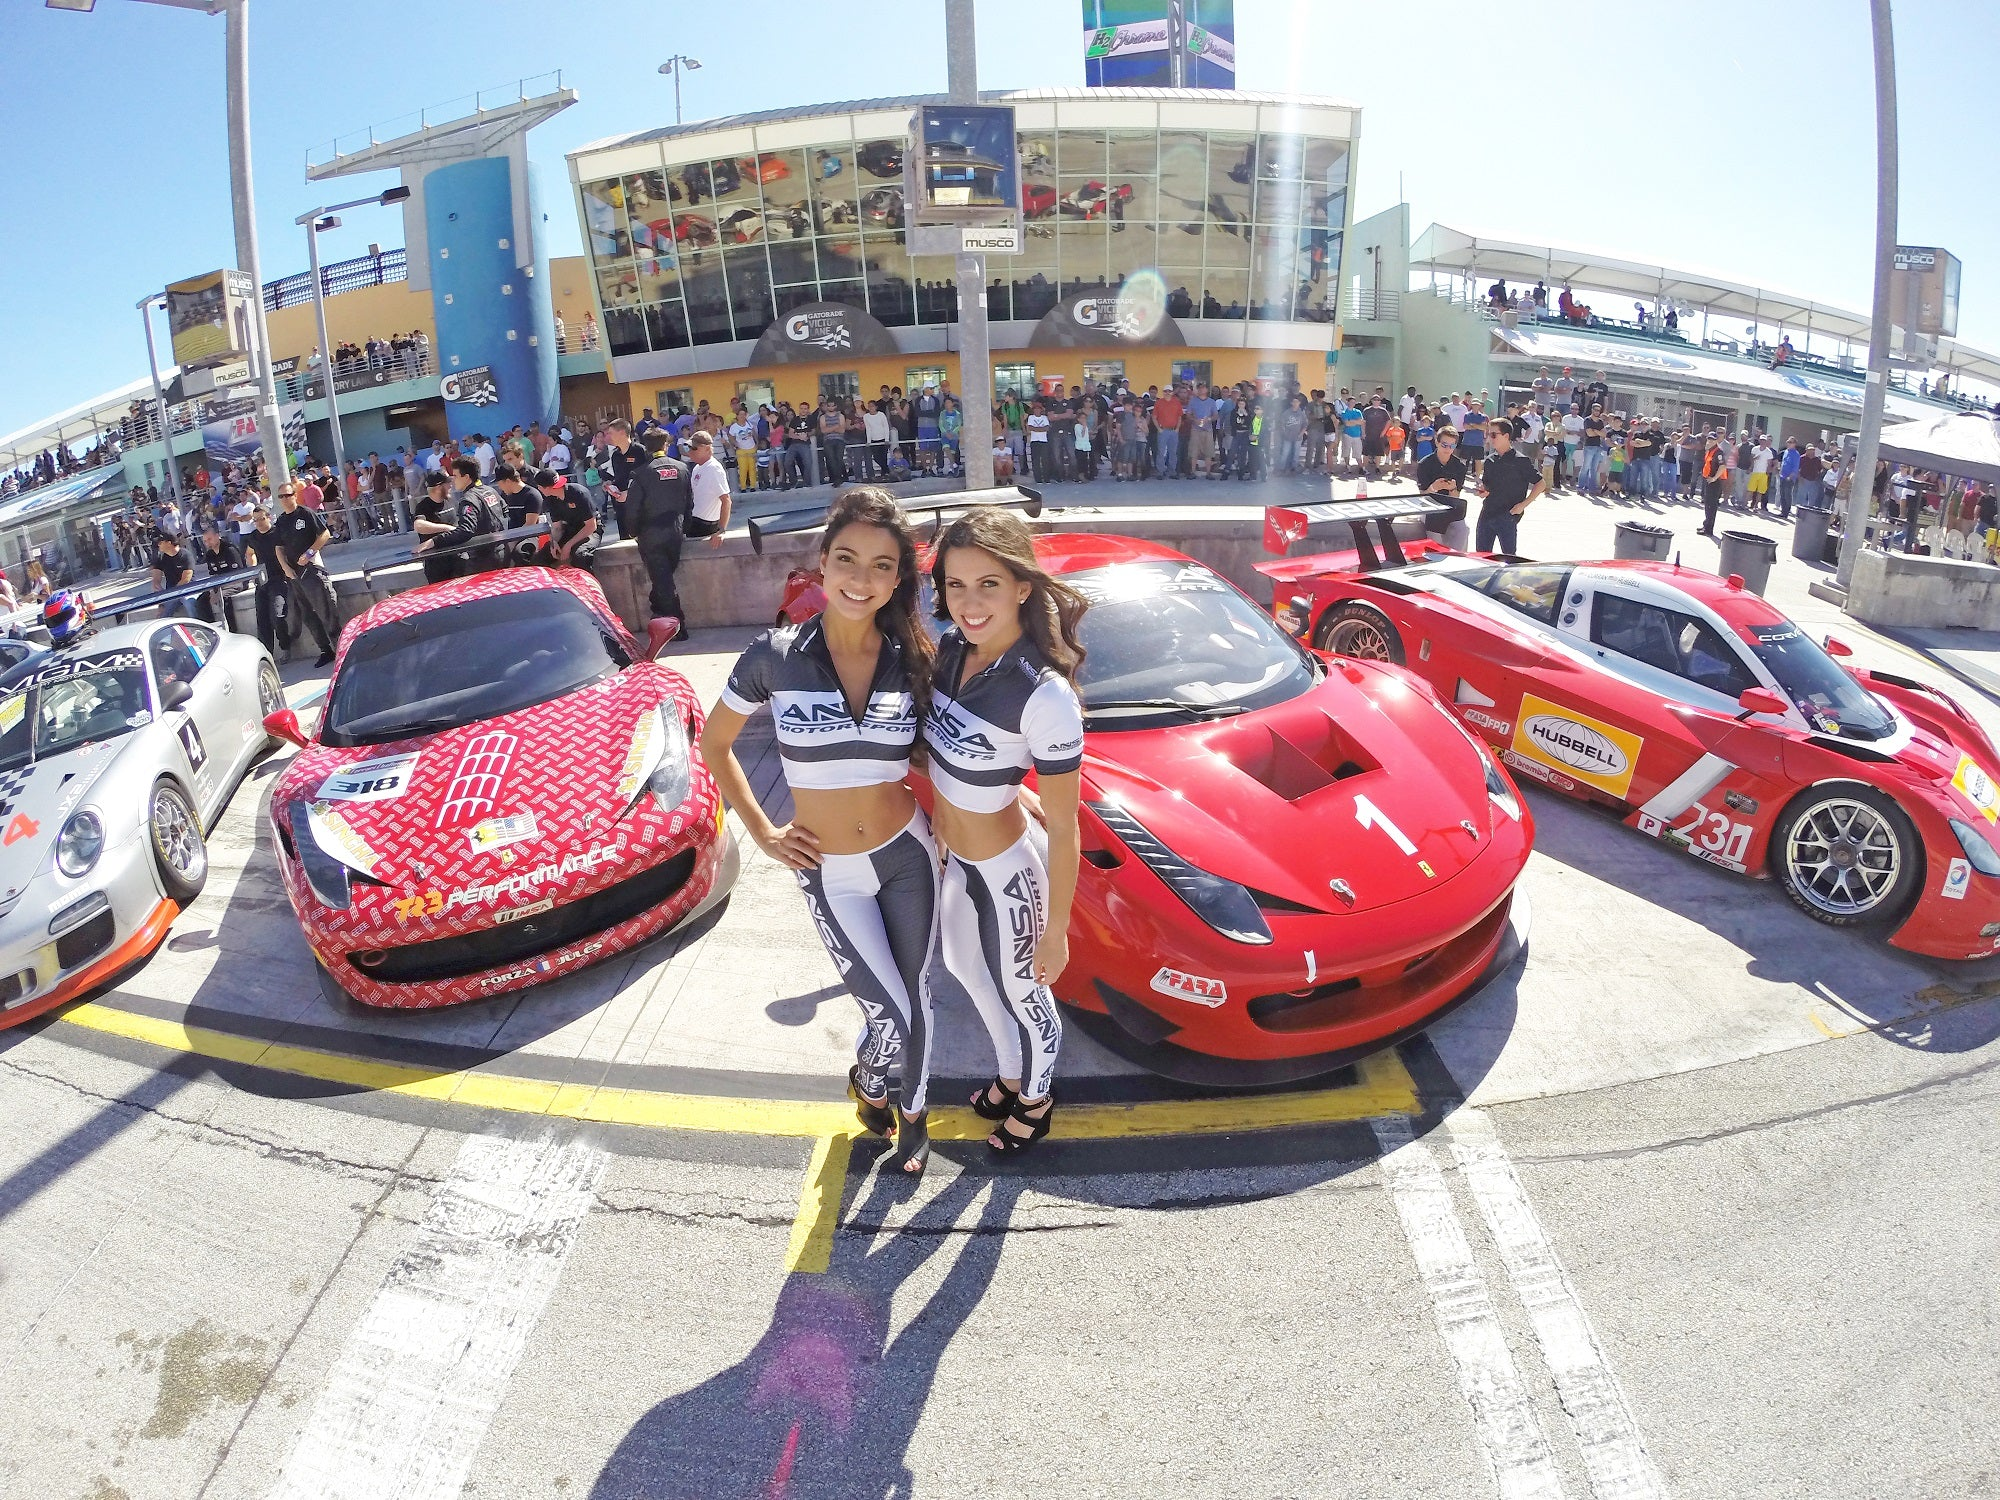 ANSA MOTORSPORTS WINS 2014 MIAMI 500 WITH FERRARI!